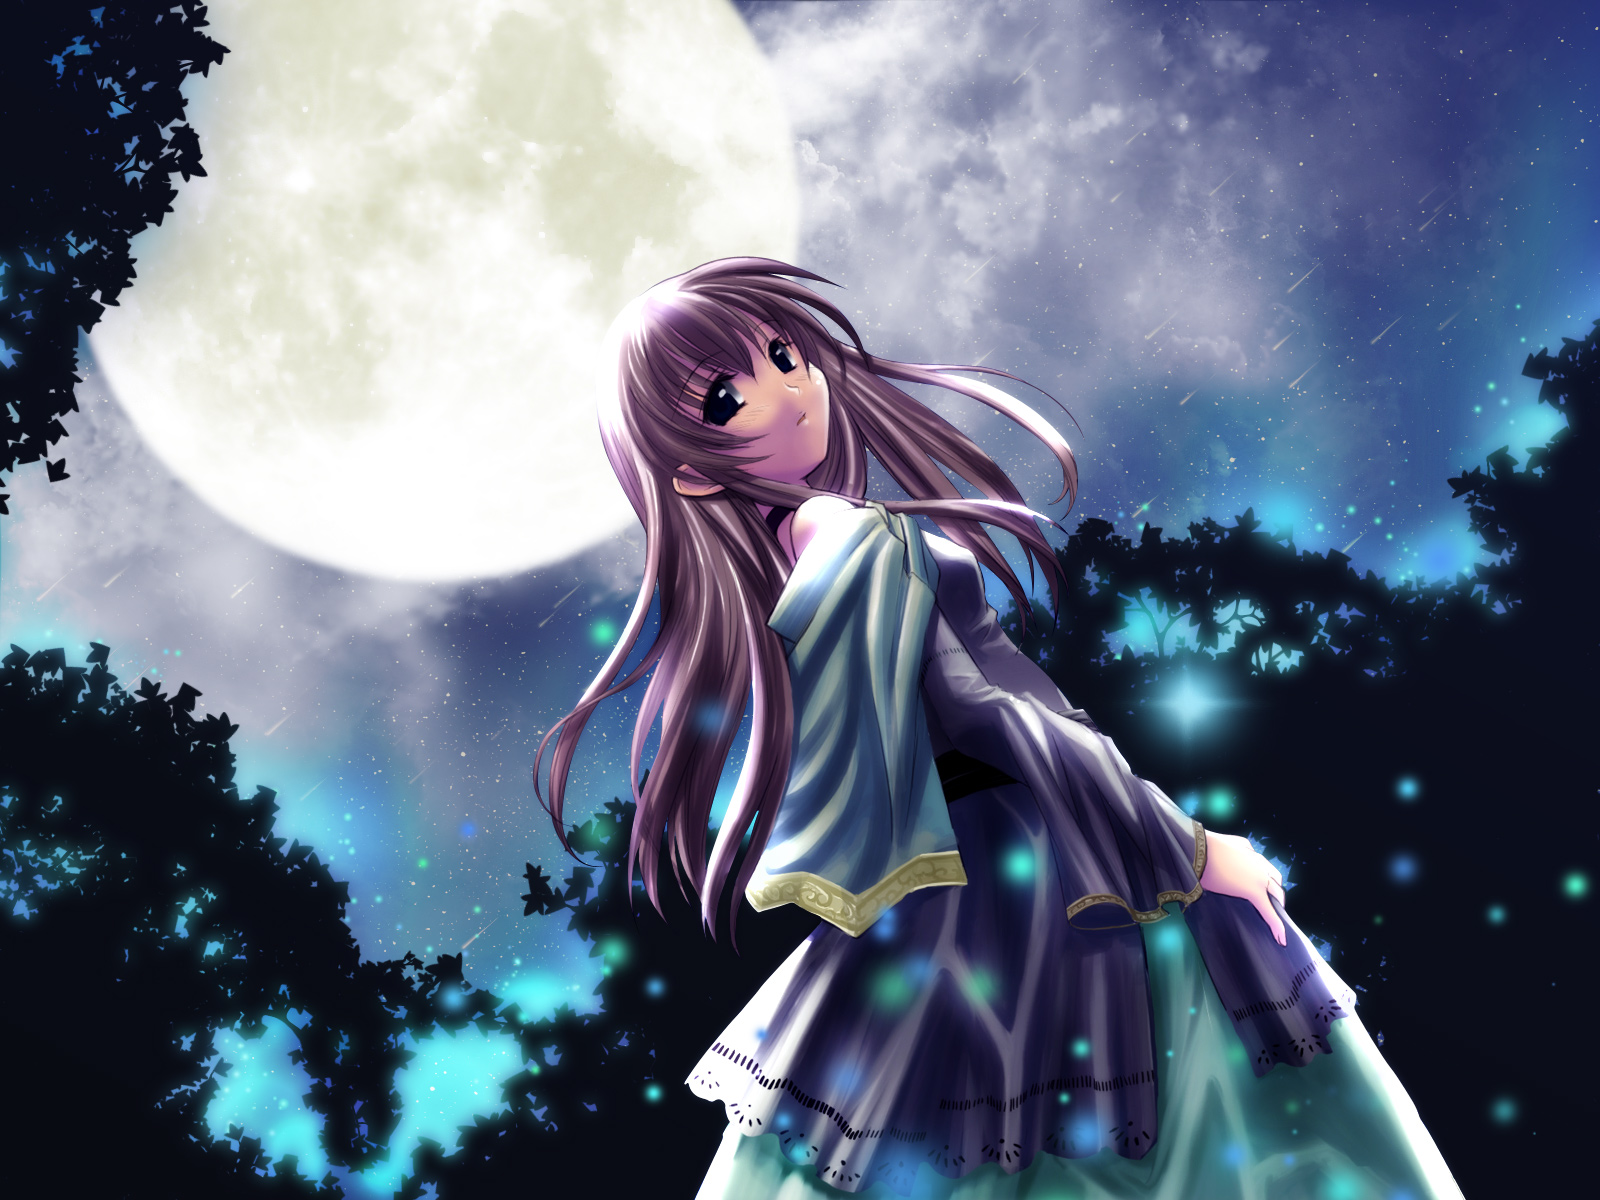 download anime wallpaper download which is under the anime 1600x1200